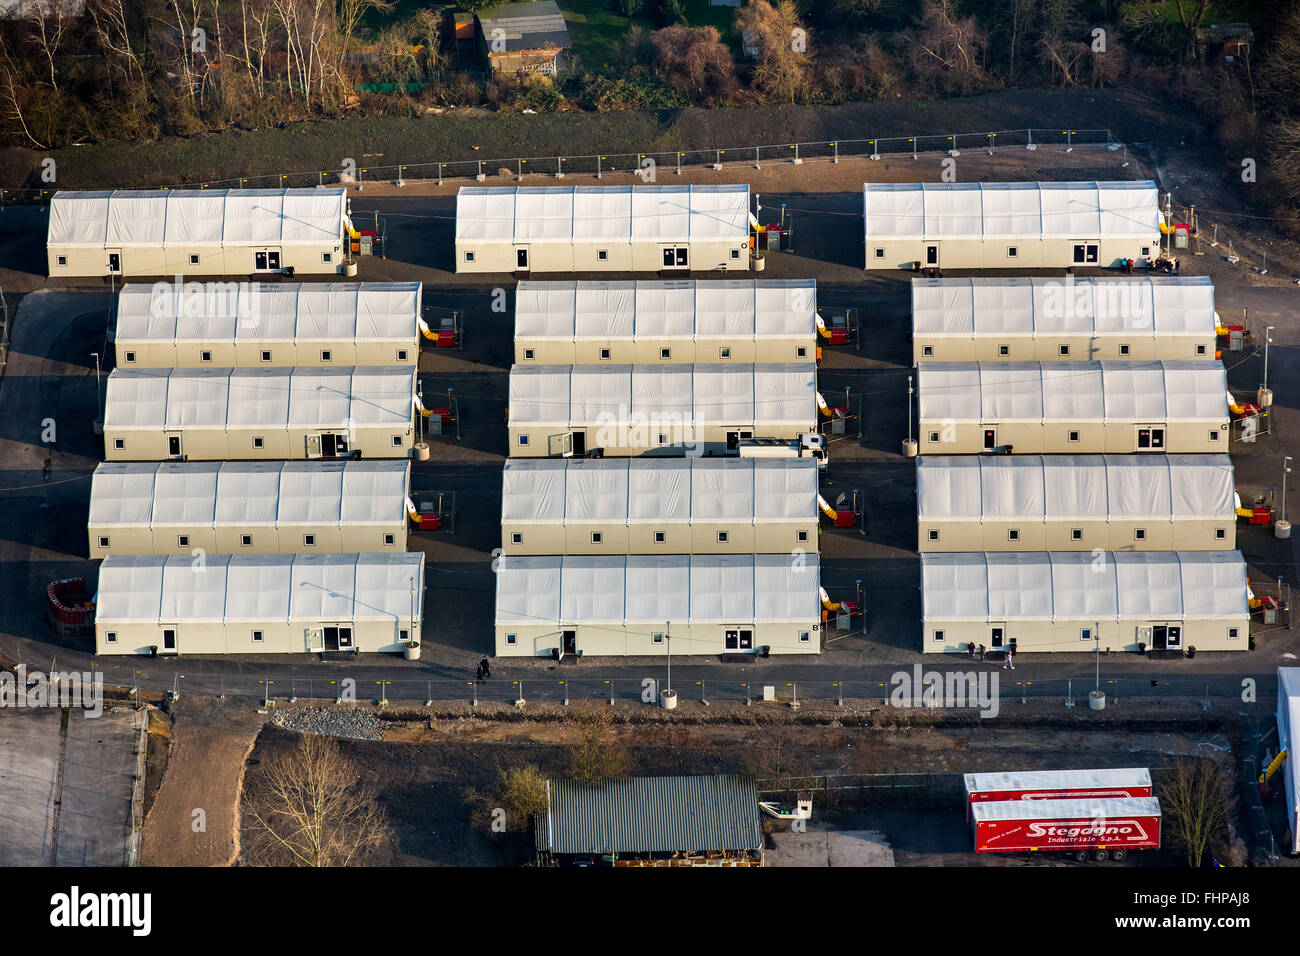 Aerial view, refugee tents, refugee camp, refugees housing, refugee crisis, Wanne-Eickel, Herne,Ruhr area,North - Stock Image